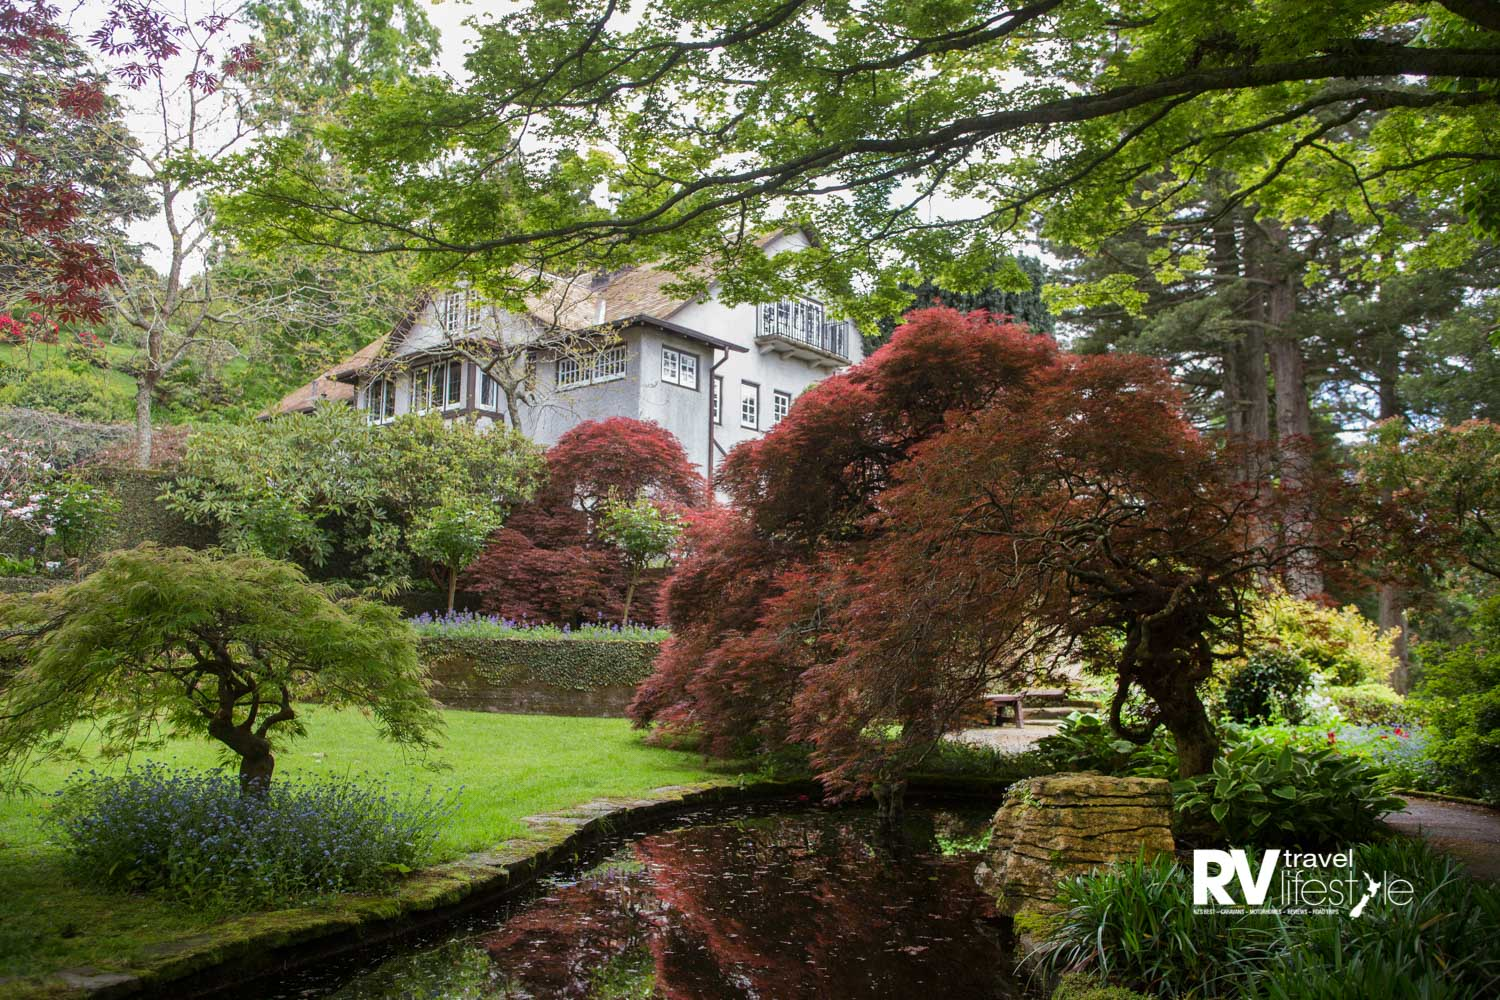 At Tupare the Chapman-Taylor designed house is set among heritage gardens